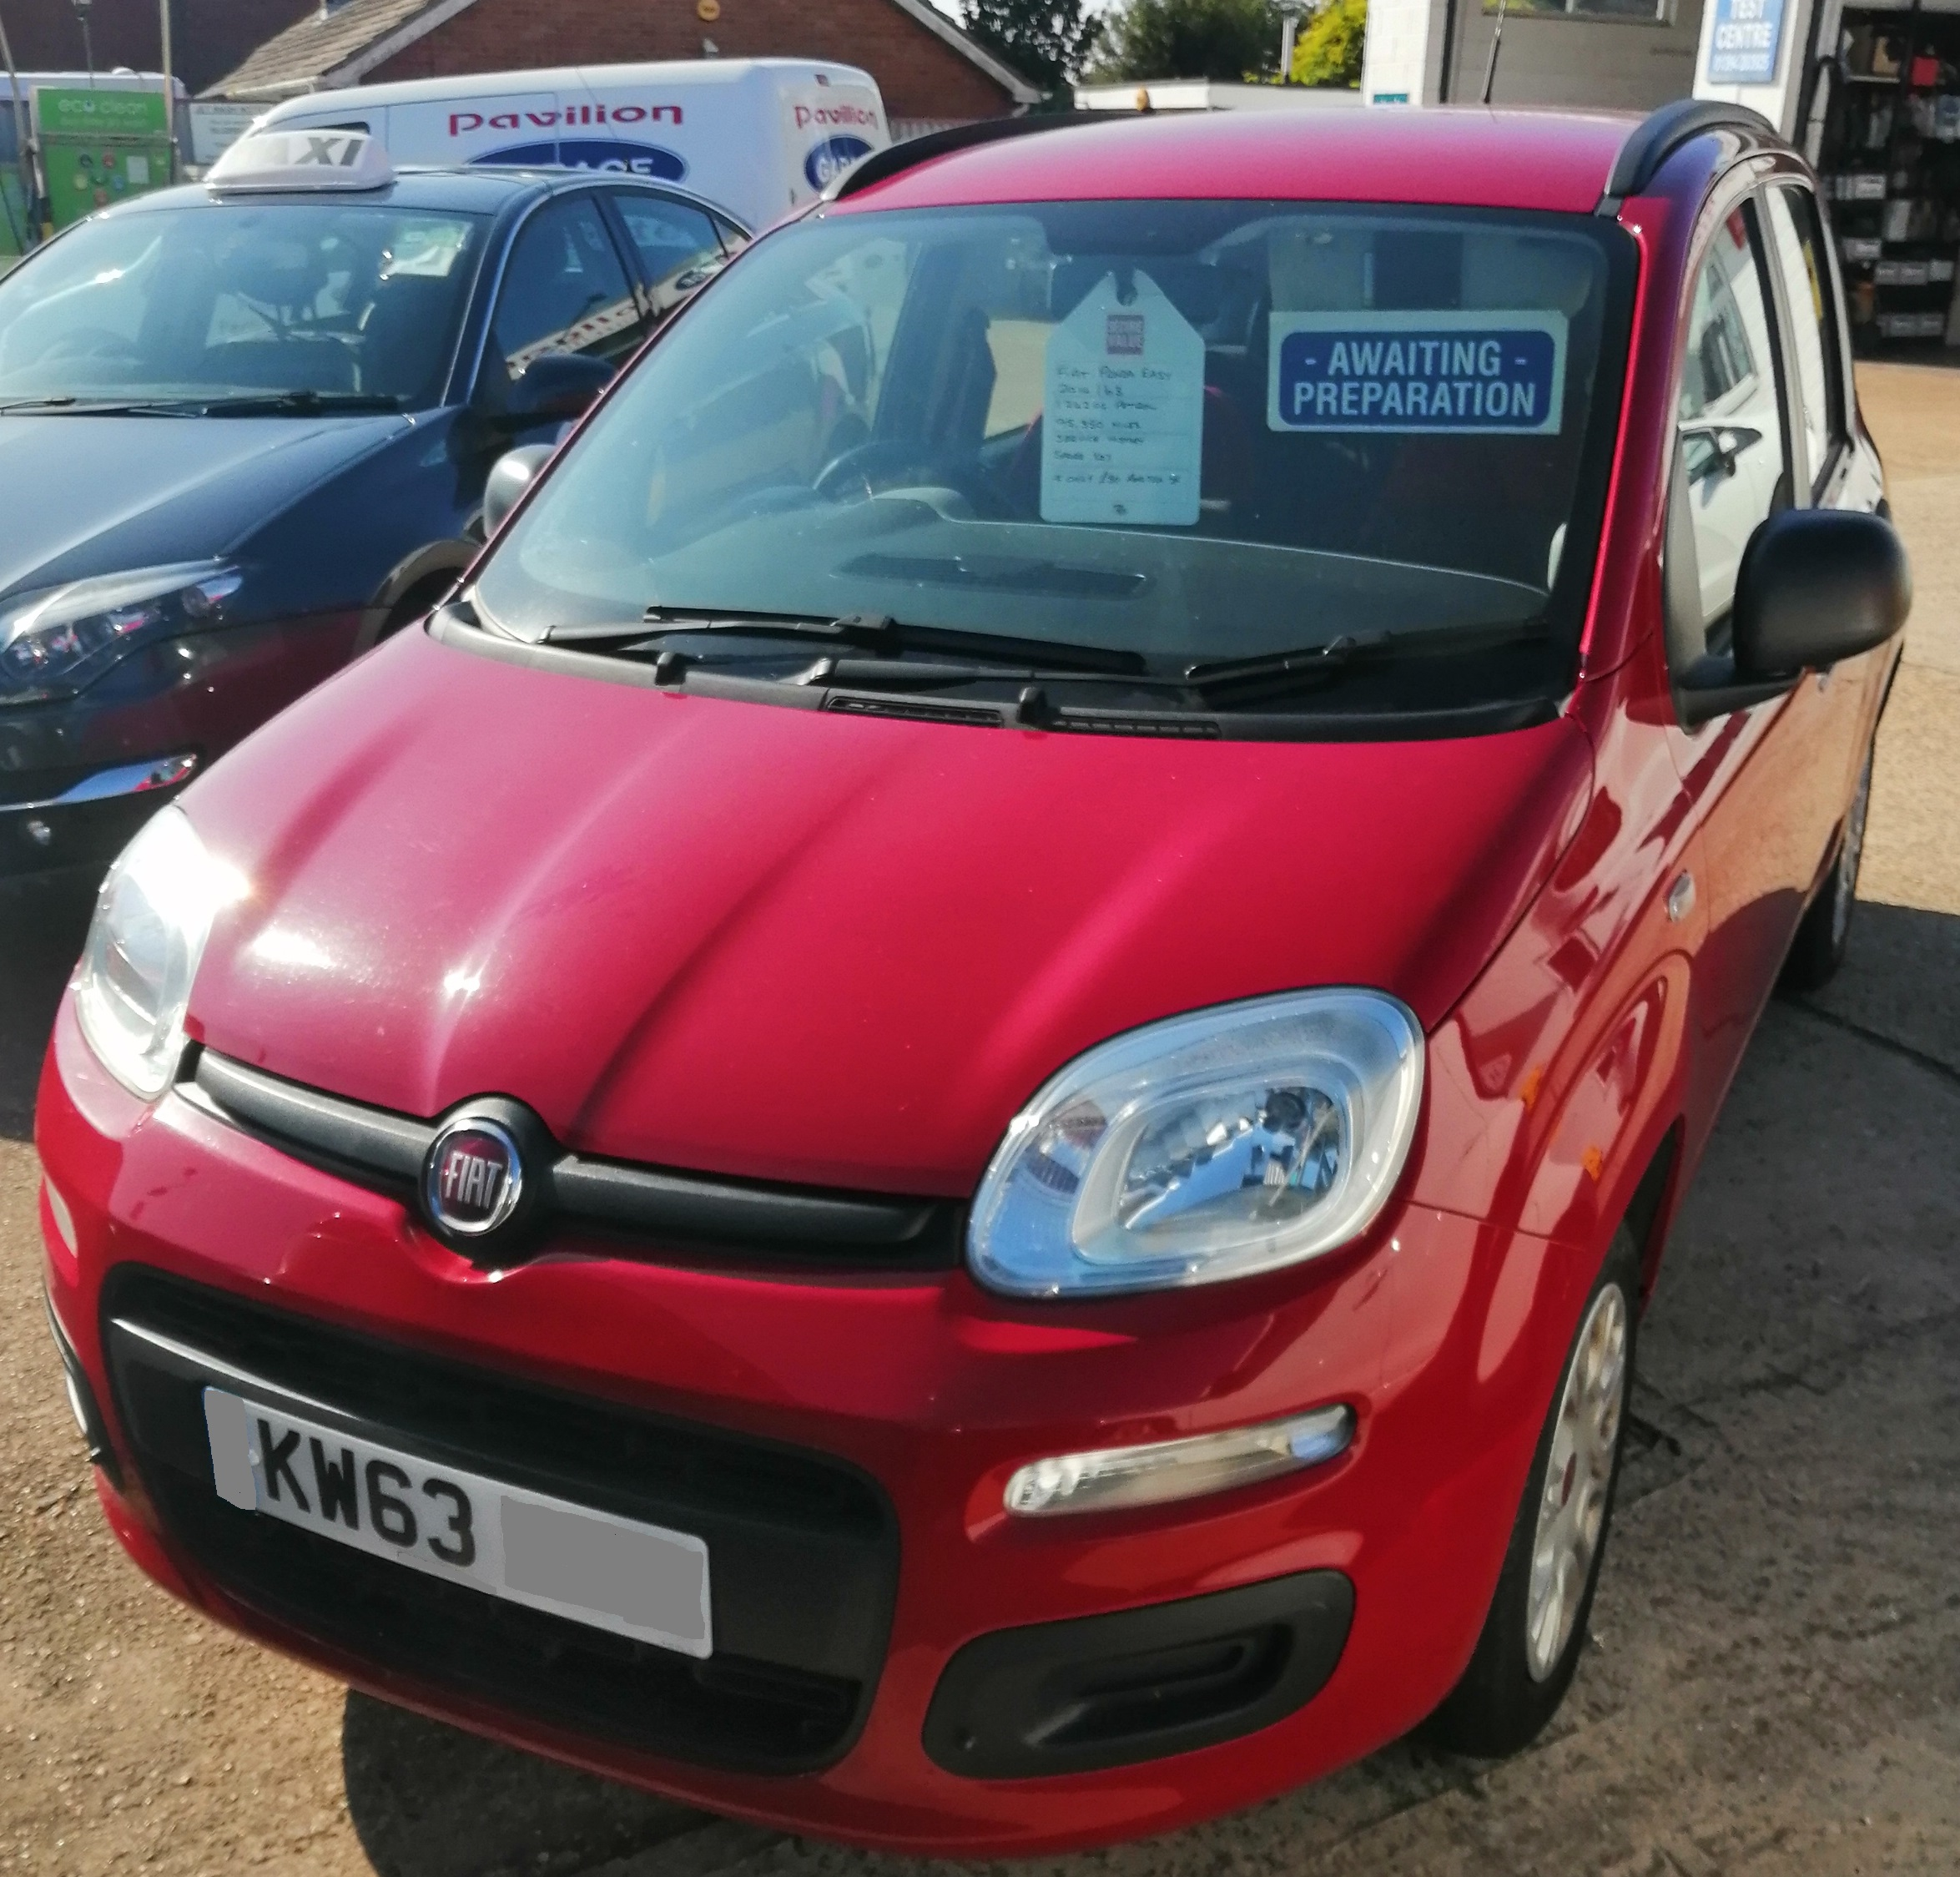 Fiat Panda Easy 1242cc - Petrol 2014 / 63 95,350 miles Service History Spare Key *** ONLY £30 per year Road Tax £3495  E10 Fuel Compliant